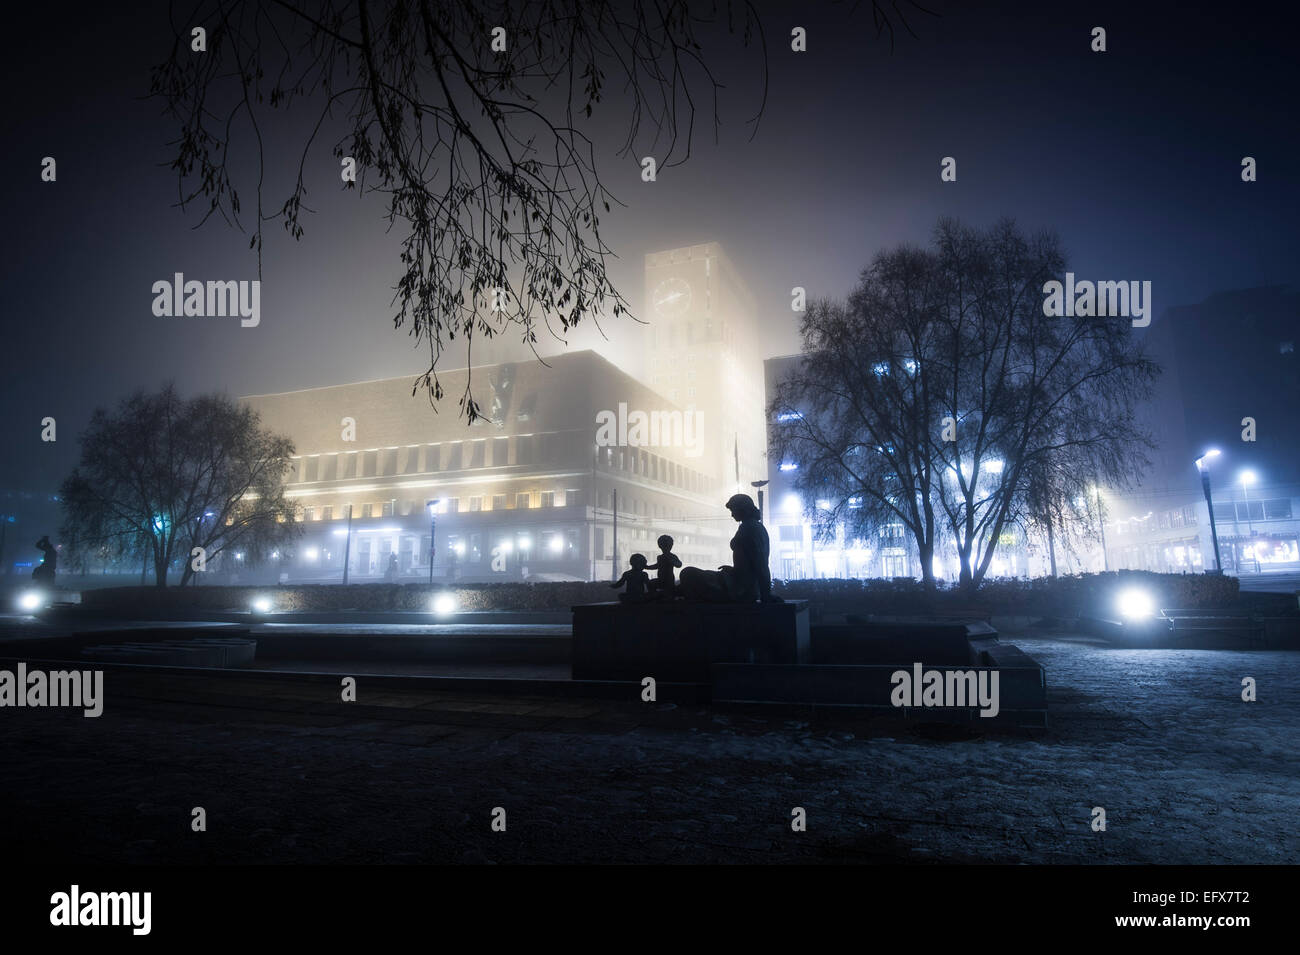 Nightphoto of The city hall square in Oslo, Norway. - Stock Image